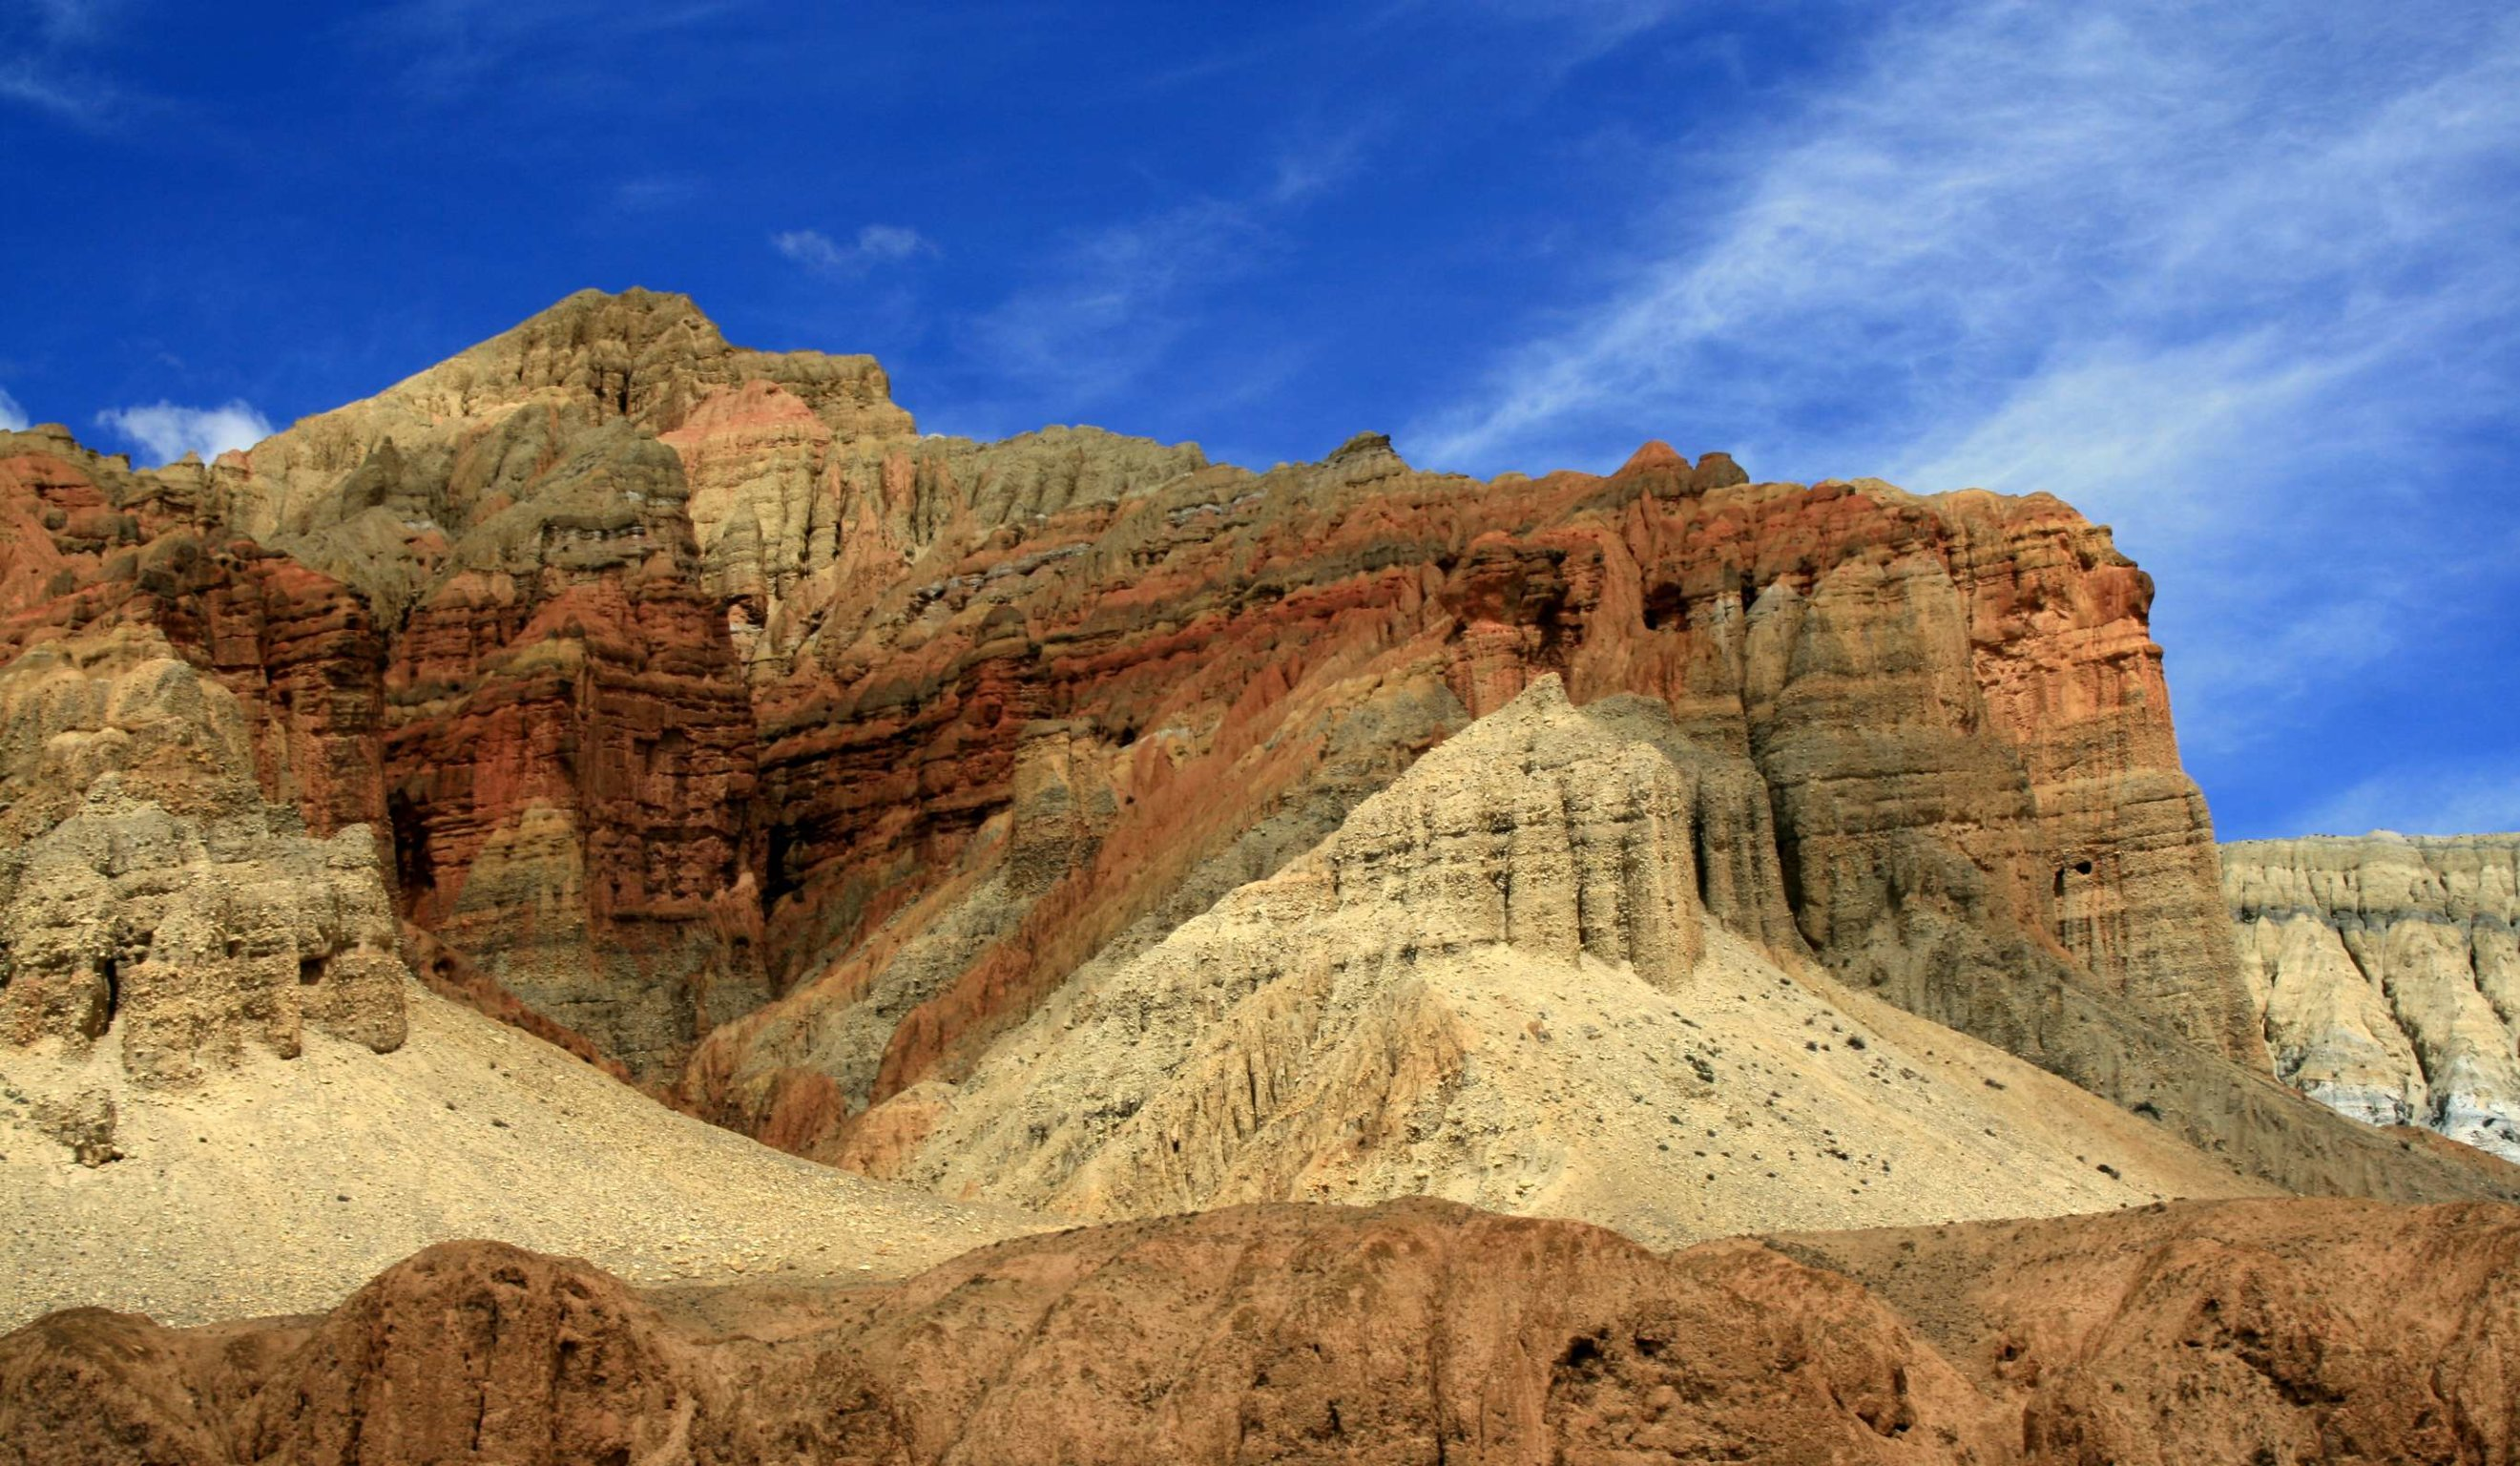 17-Day Upper Mustang Trekking - Nepal and United States Itinerary